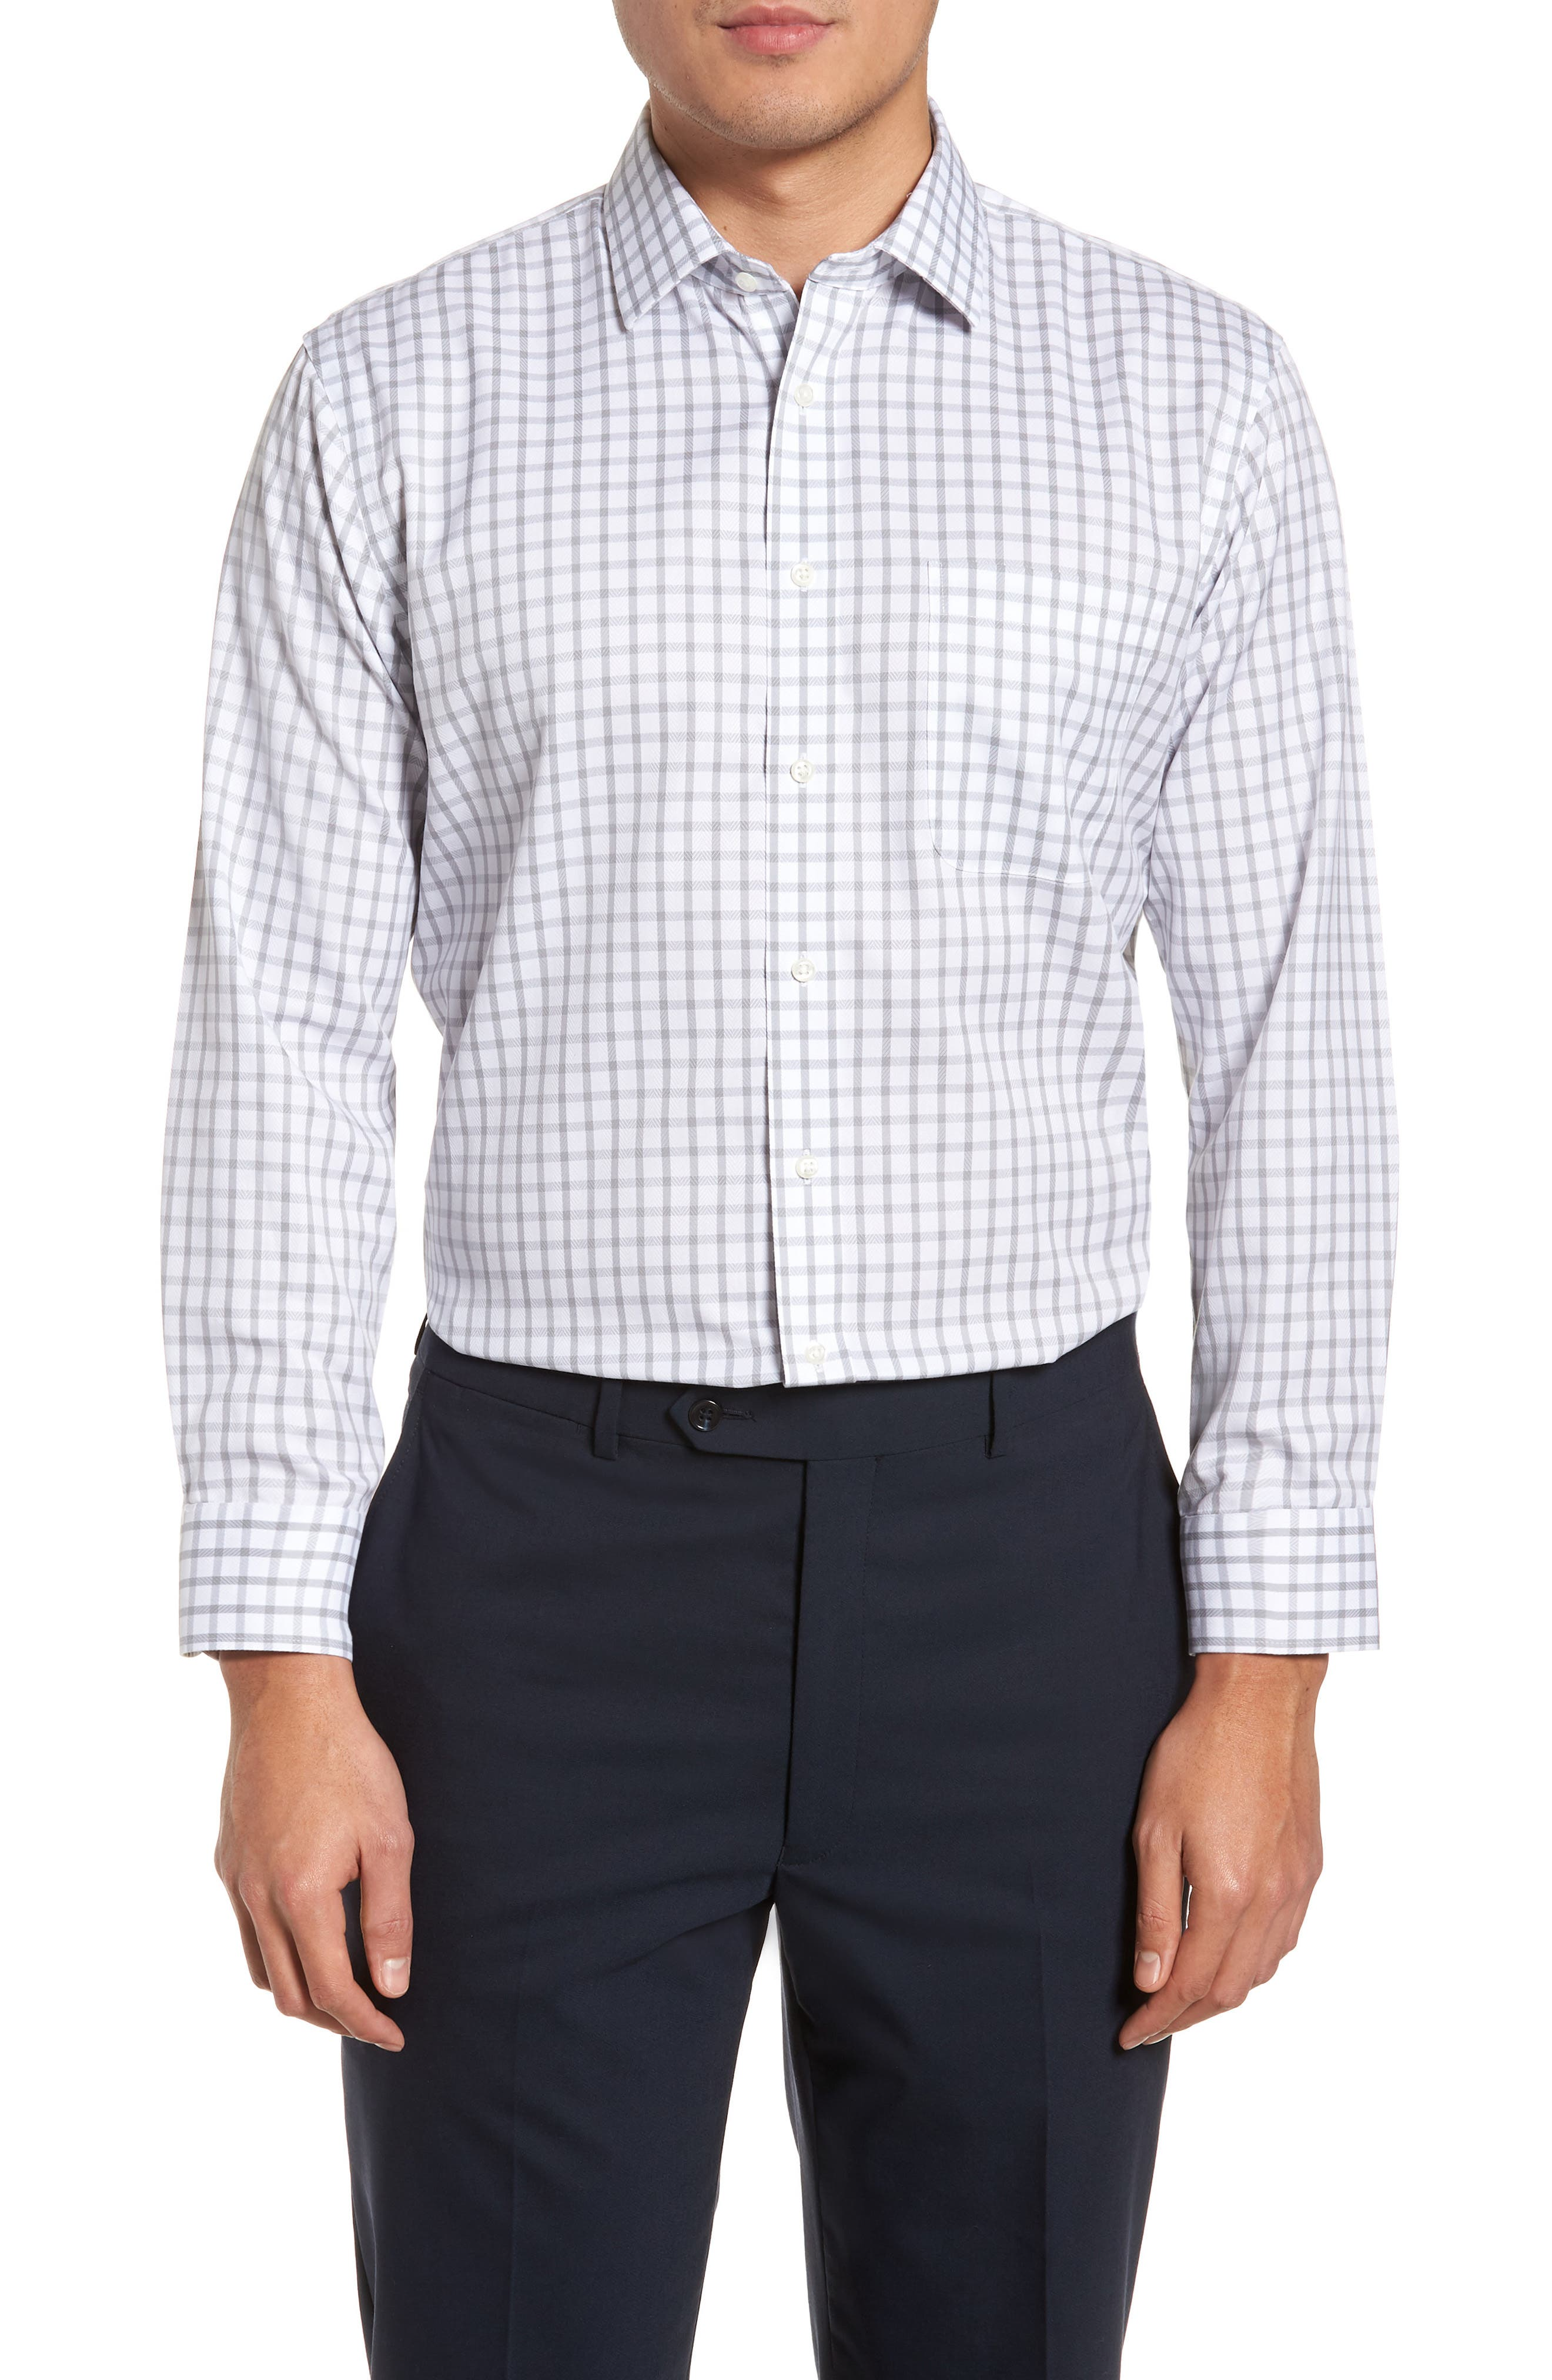 Smartcare<sup>™</sup> Trim Fit Check Dress Shirt,                         Main,                         color, 050